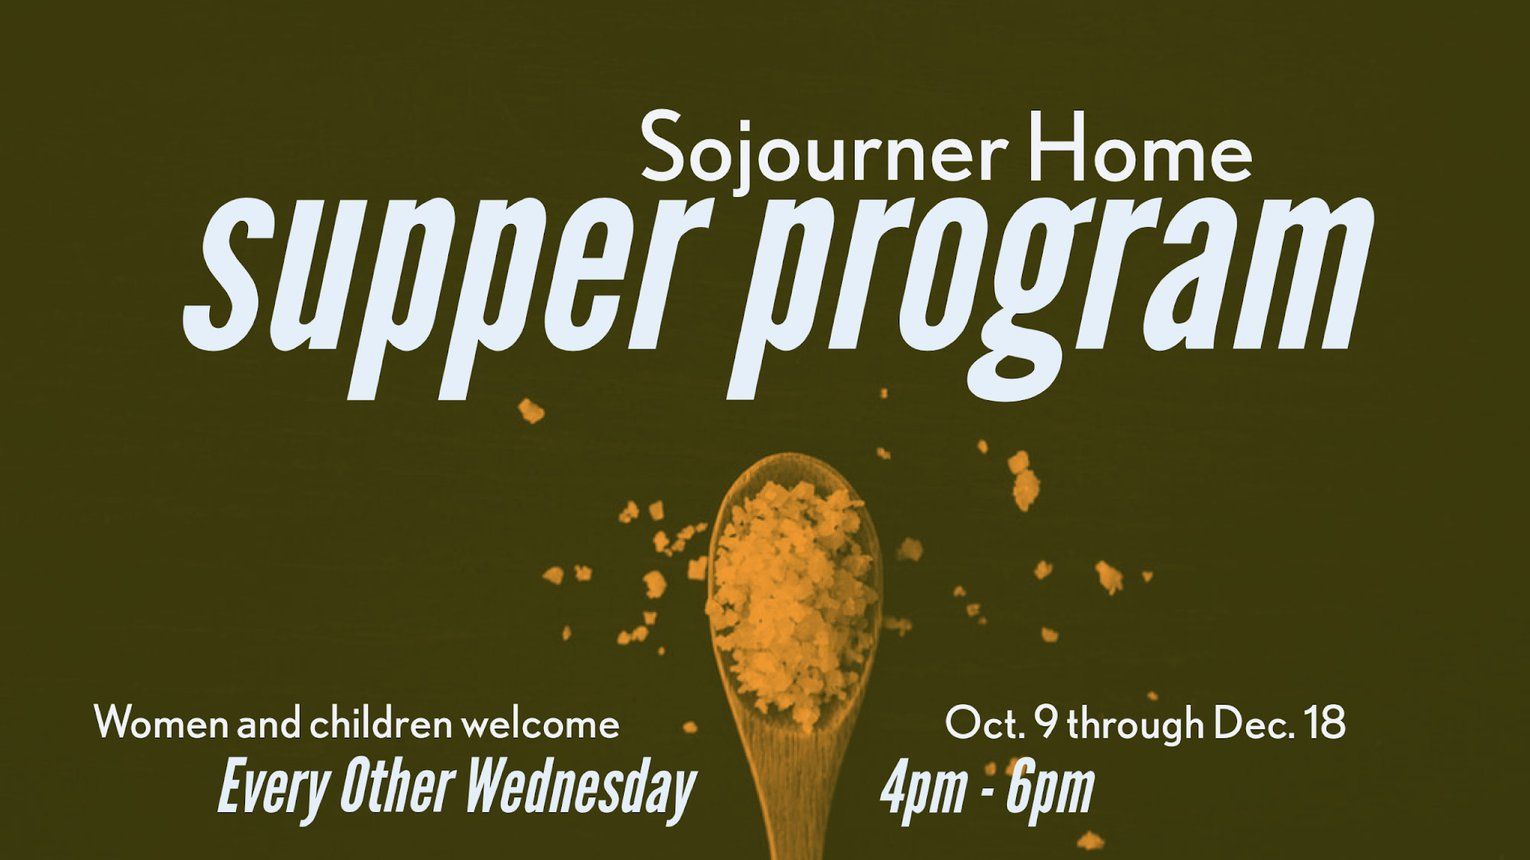 Sojourner Home Supper Program